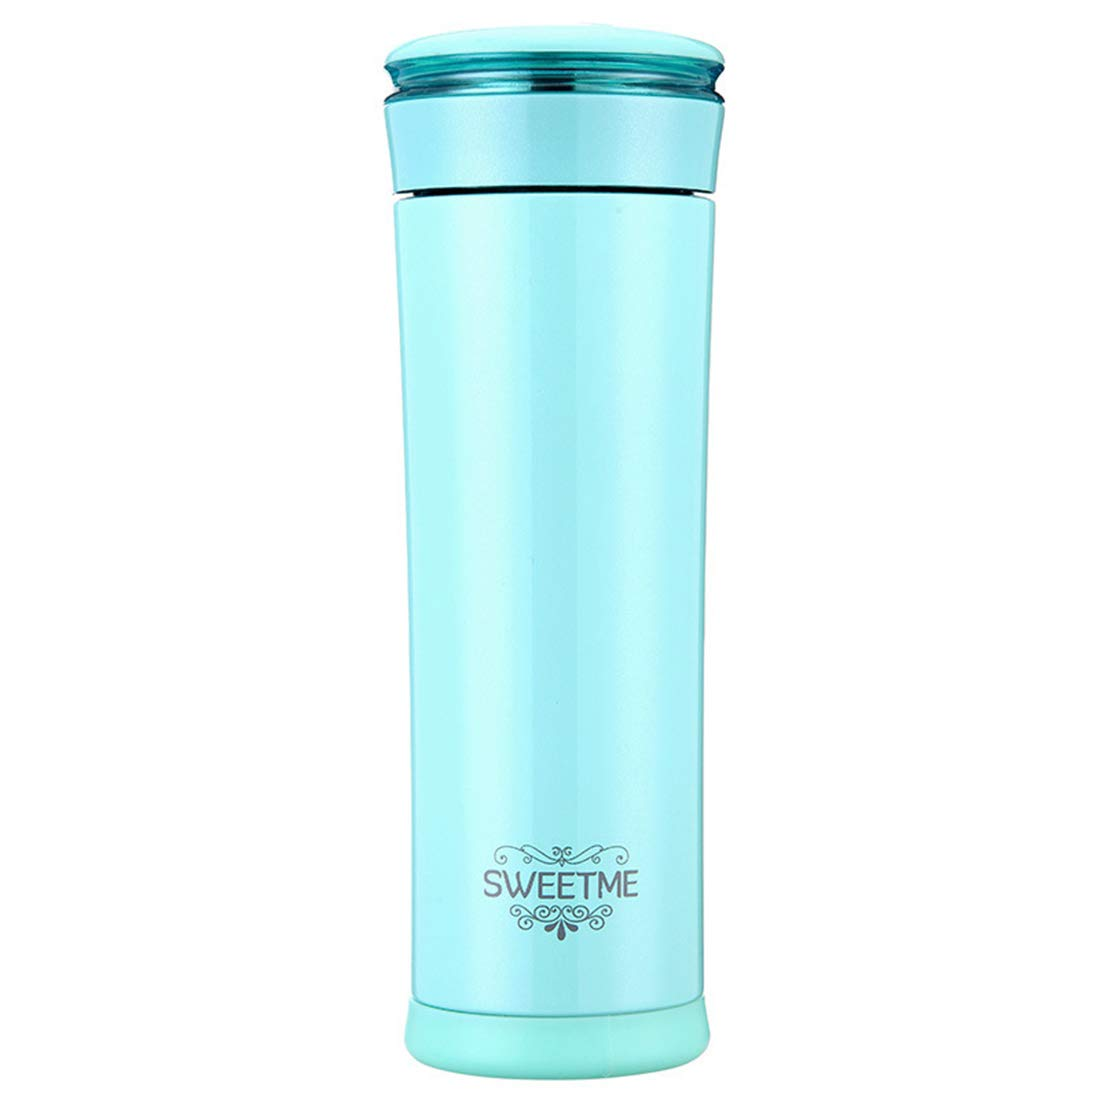 Yhui Stainless Steel Cup 2019 Vacuum Cup Portable Outdoor Leak Proof Made from Stainless Steel Sports Cup/Pink (Color : Green, Size : 500ml) by Yhui